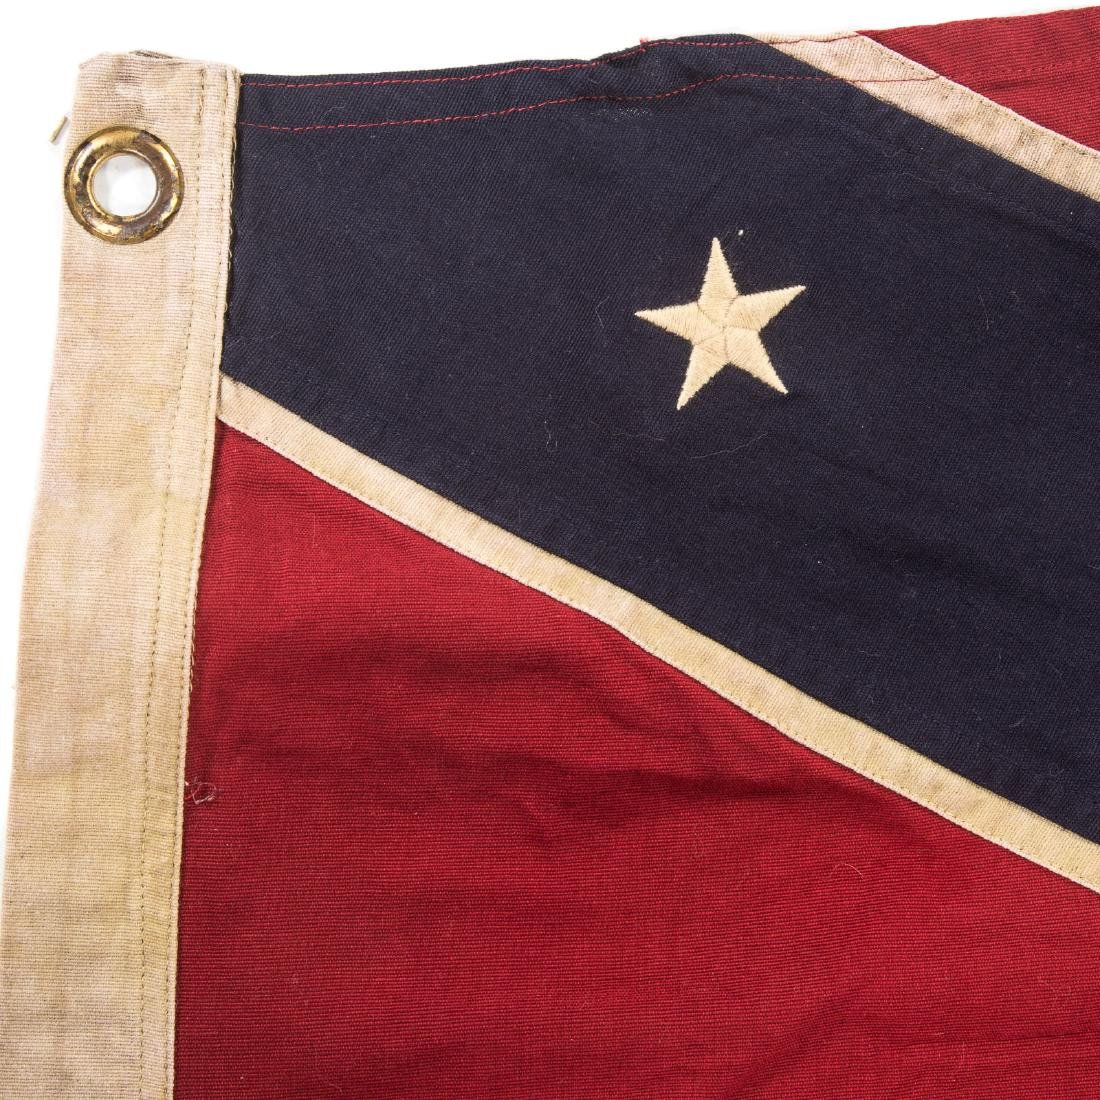 Confederate re-enactors battle flag - 3